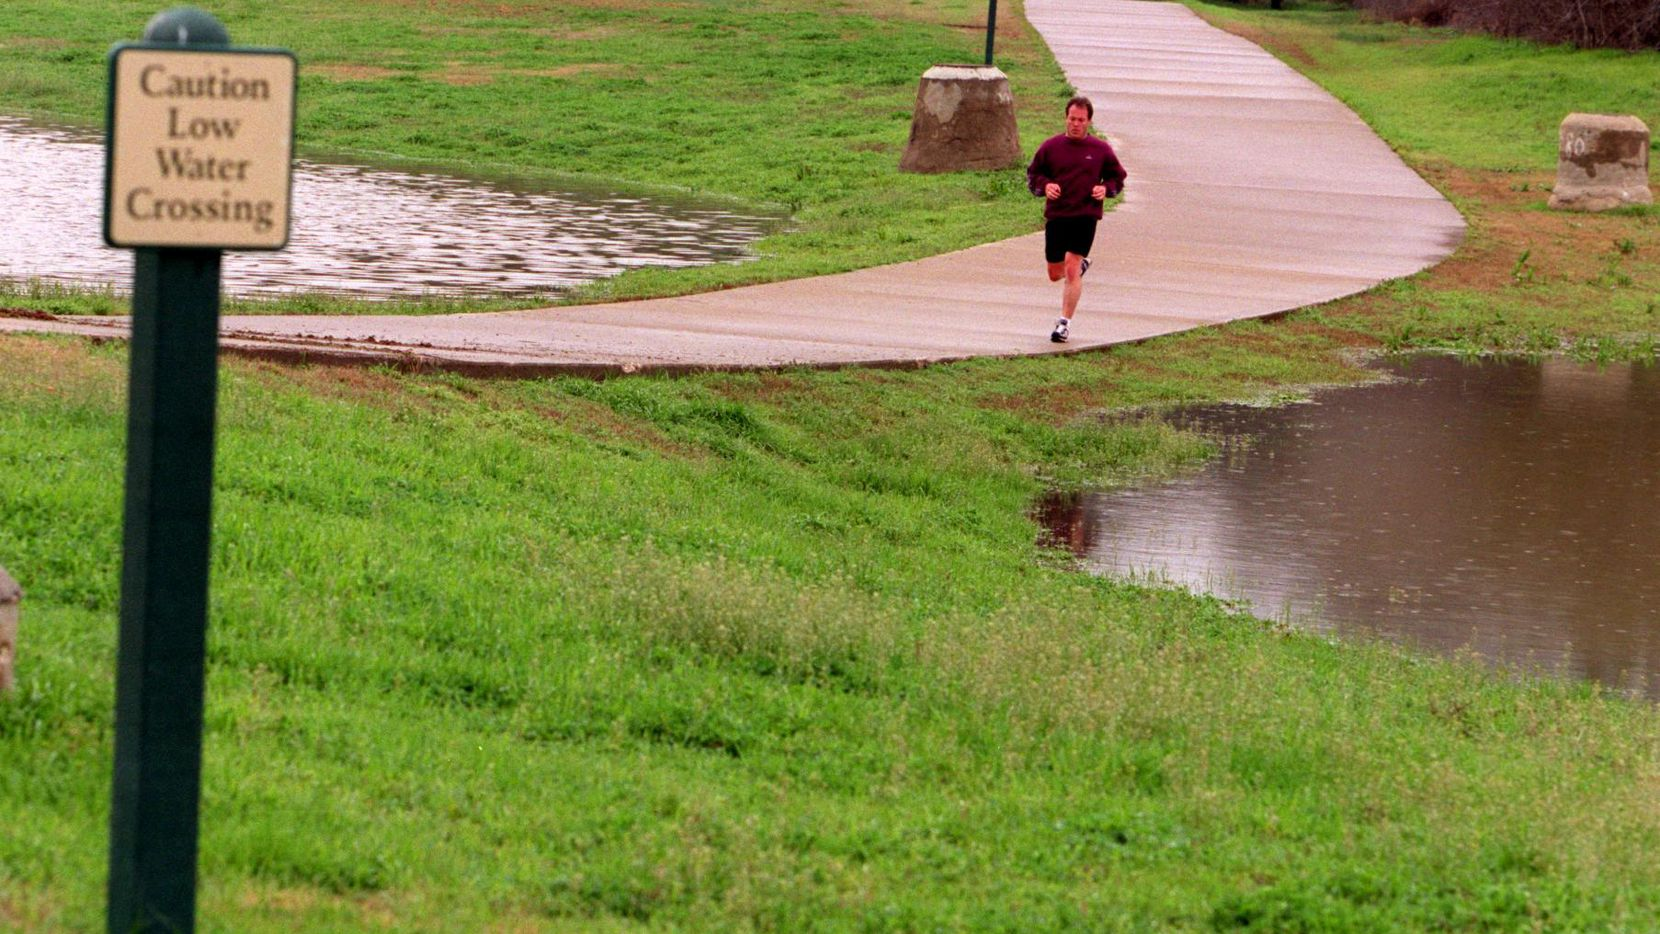 An unidentified jogger exercises along Campion Trail in north Irving. Flooding along the trail has led Irving to close several areas.